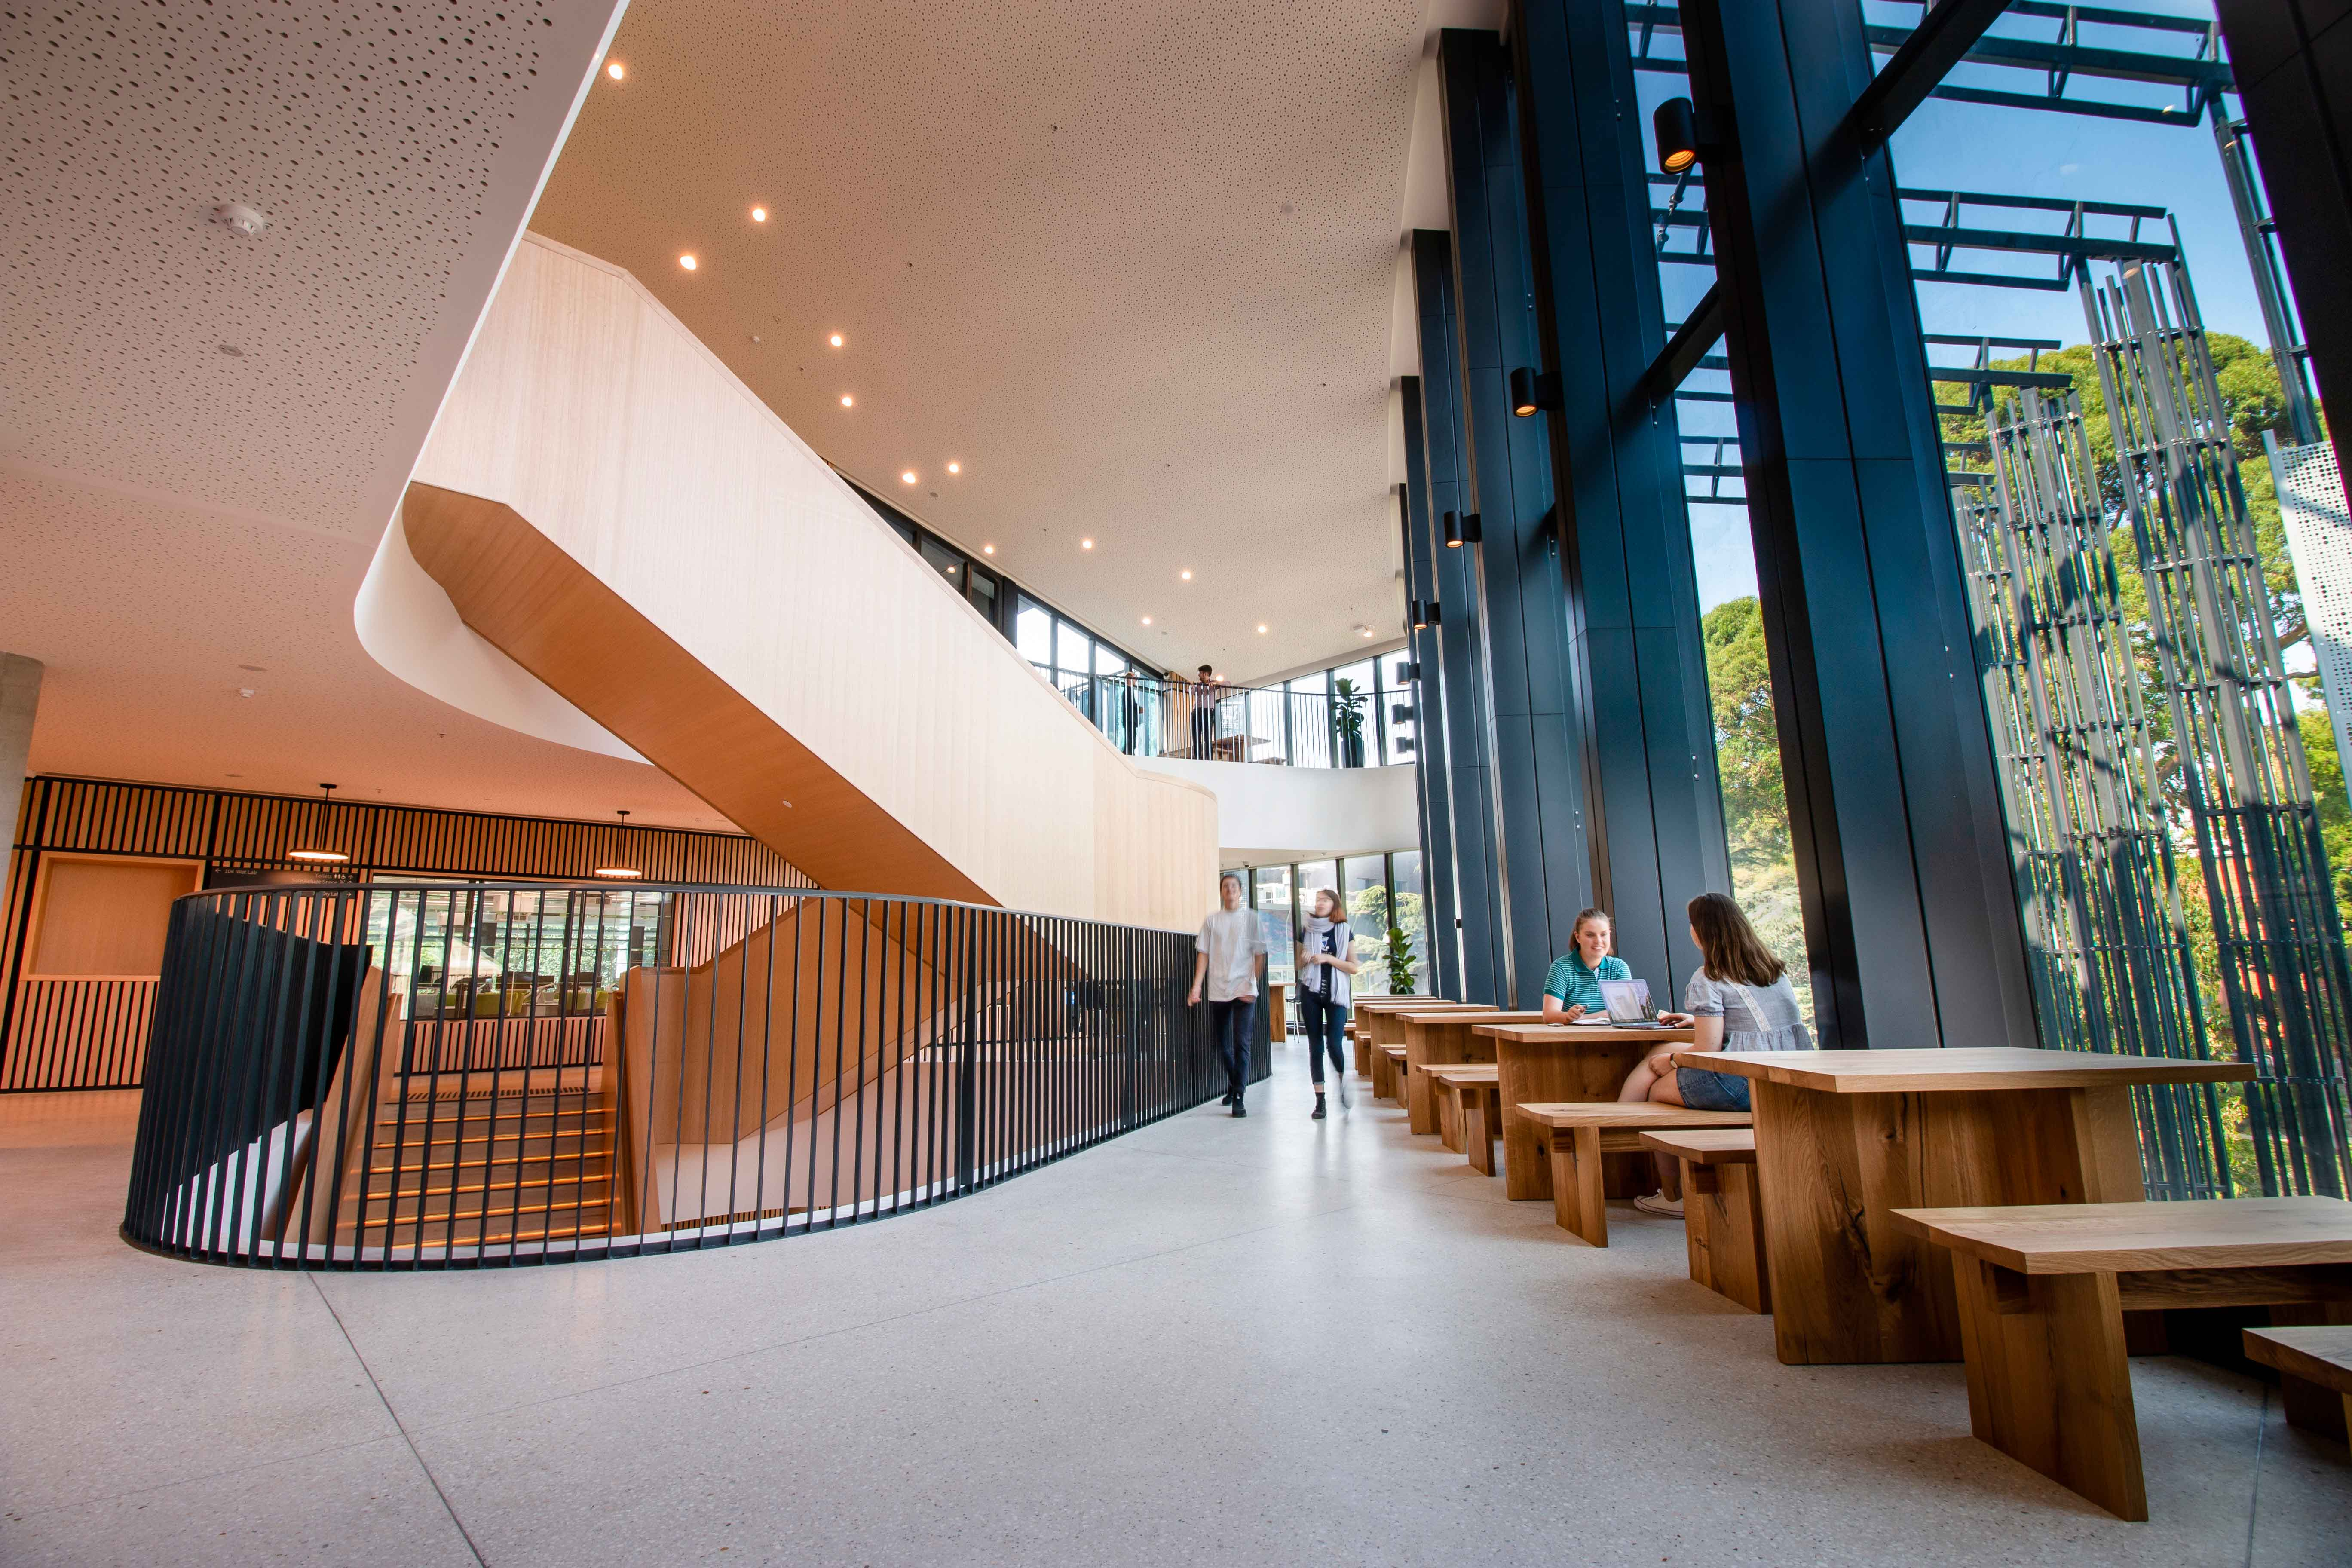 Ground level displaying a grand and modern space for students to meet.